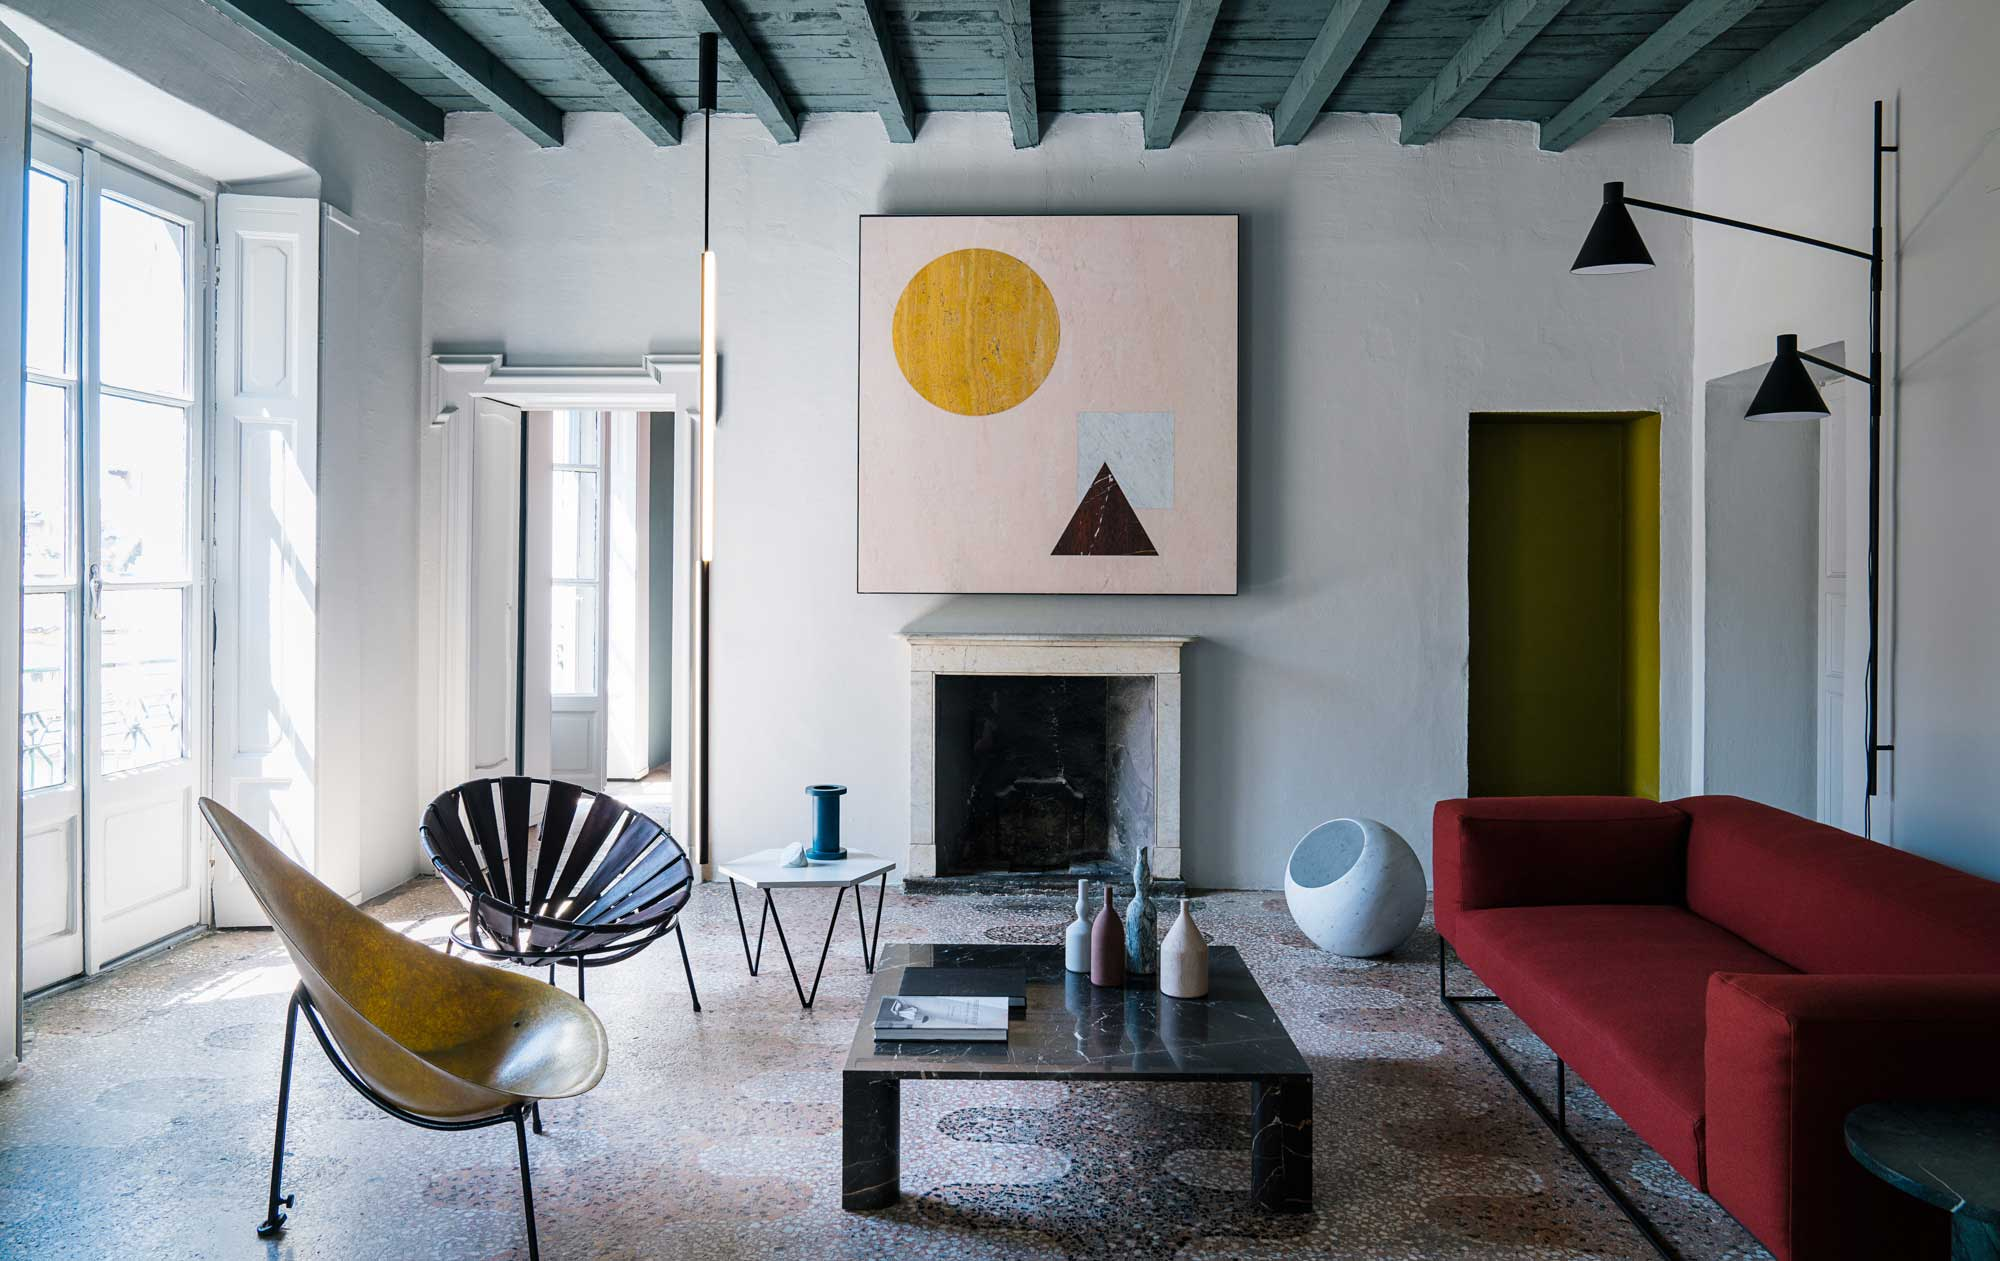 Beautiful interior photography by Giorgio Possenti. Love the shapes and colors in his images. ©  Giorgio Possenti